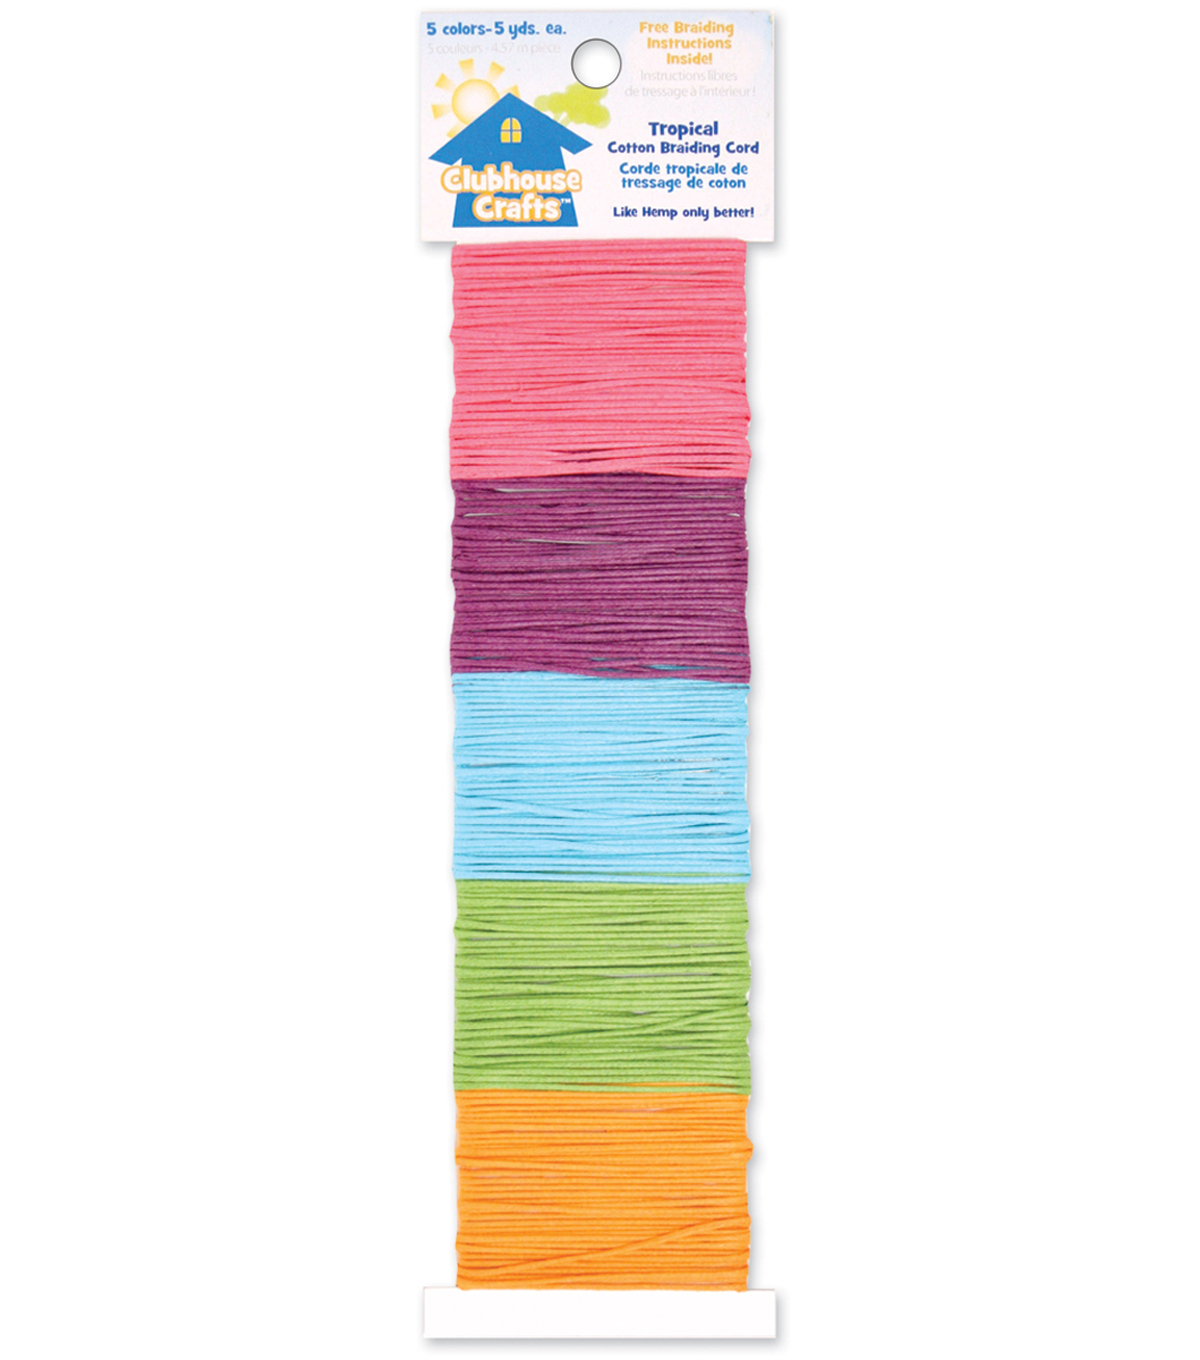 Sulyn Clubhouse Crafts-Tropical Cotton Braiding Cord-5 Colors